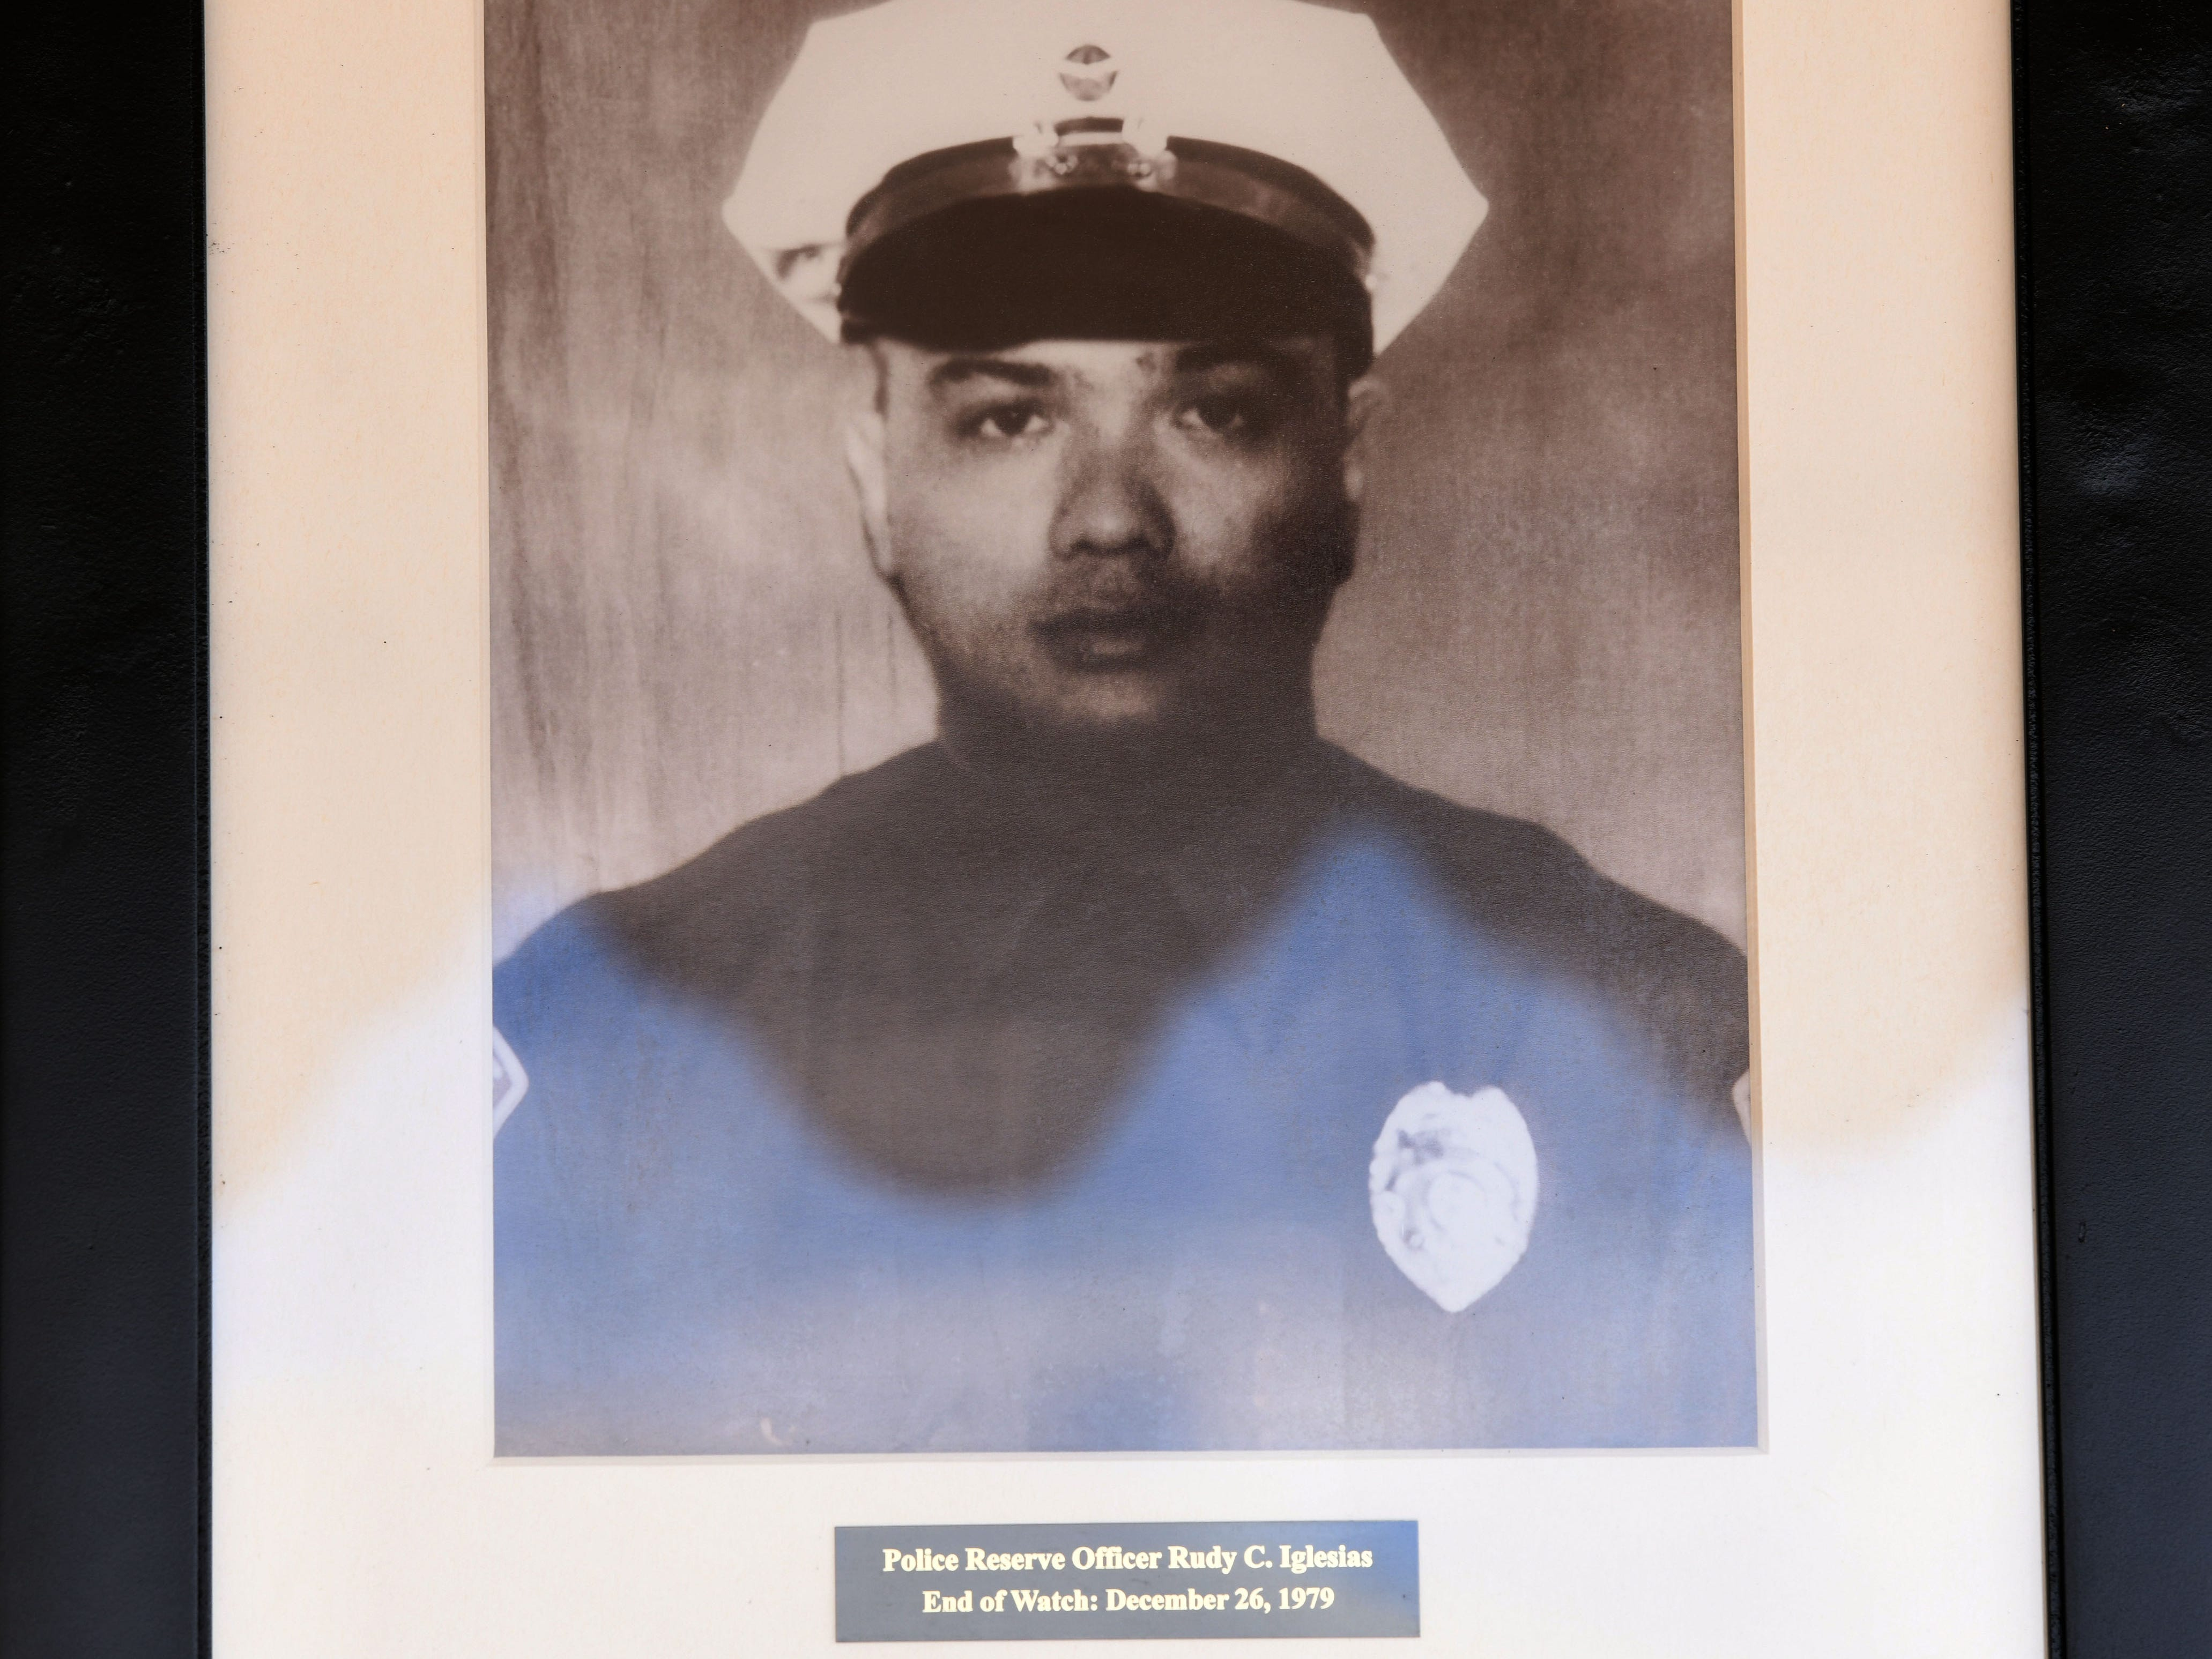 Police Reserve Officer Rudy Iglesias